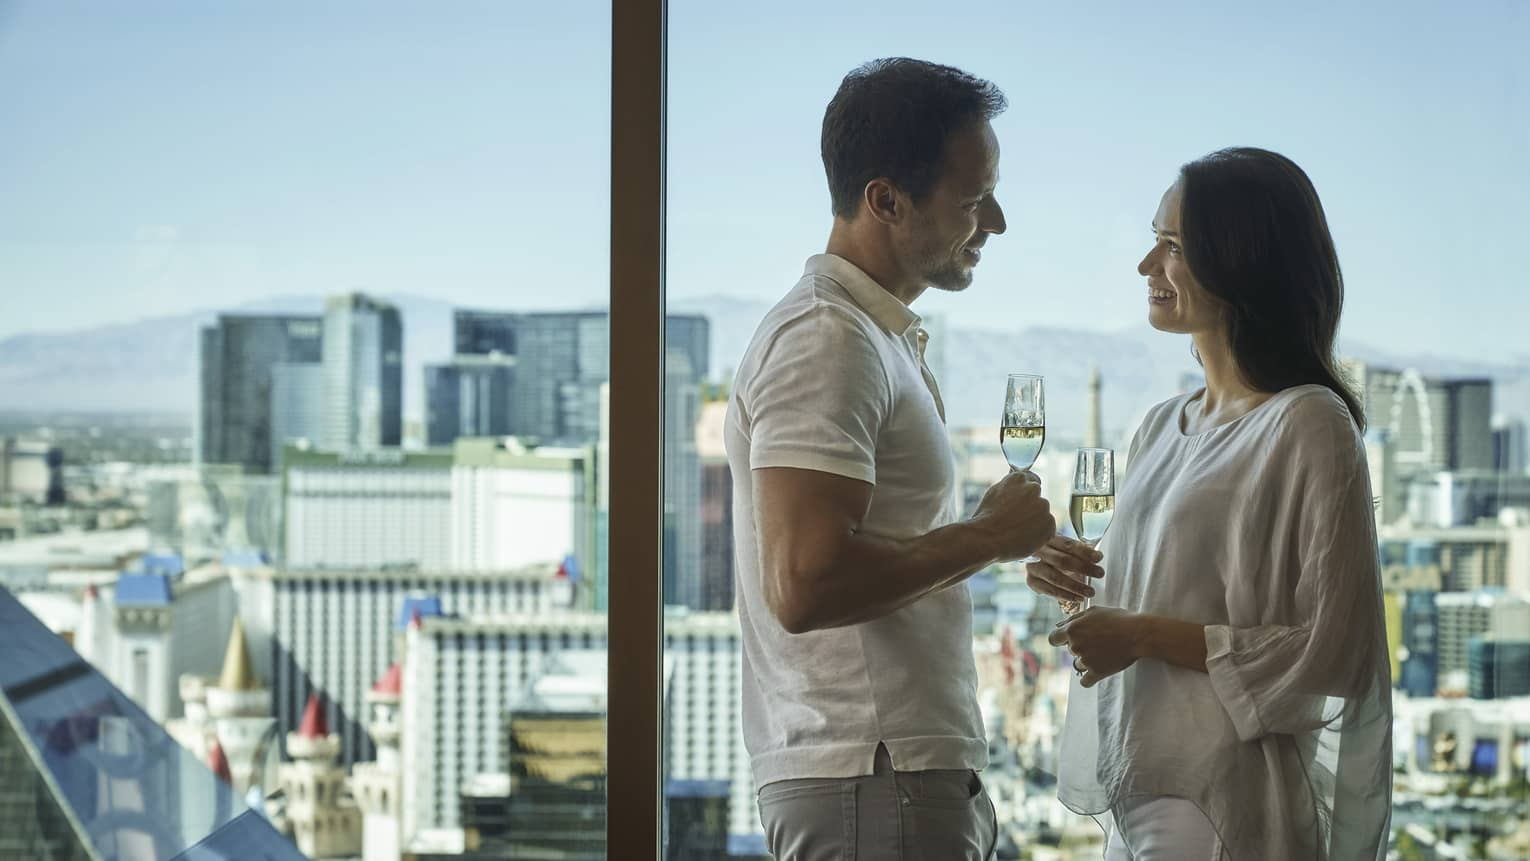 A couple cheers their glasses as they enjoy the view of the city from a floor length window